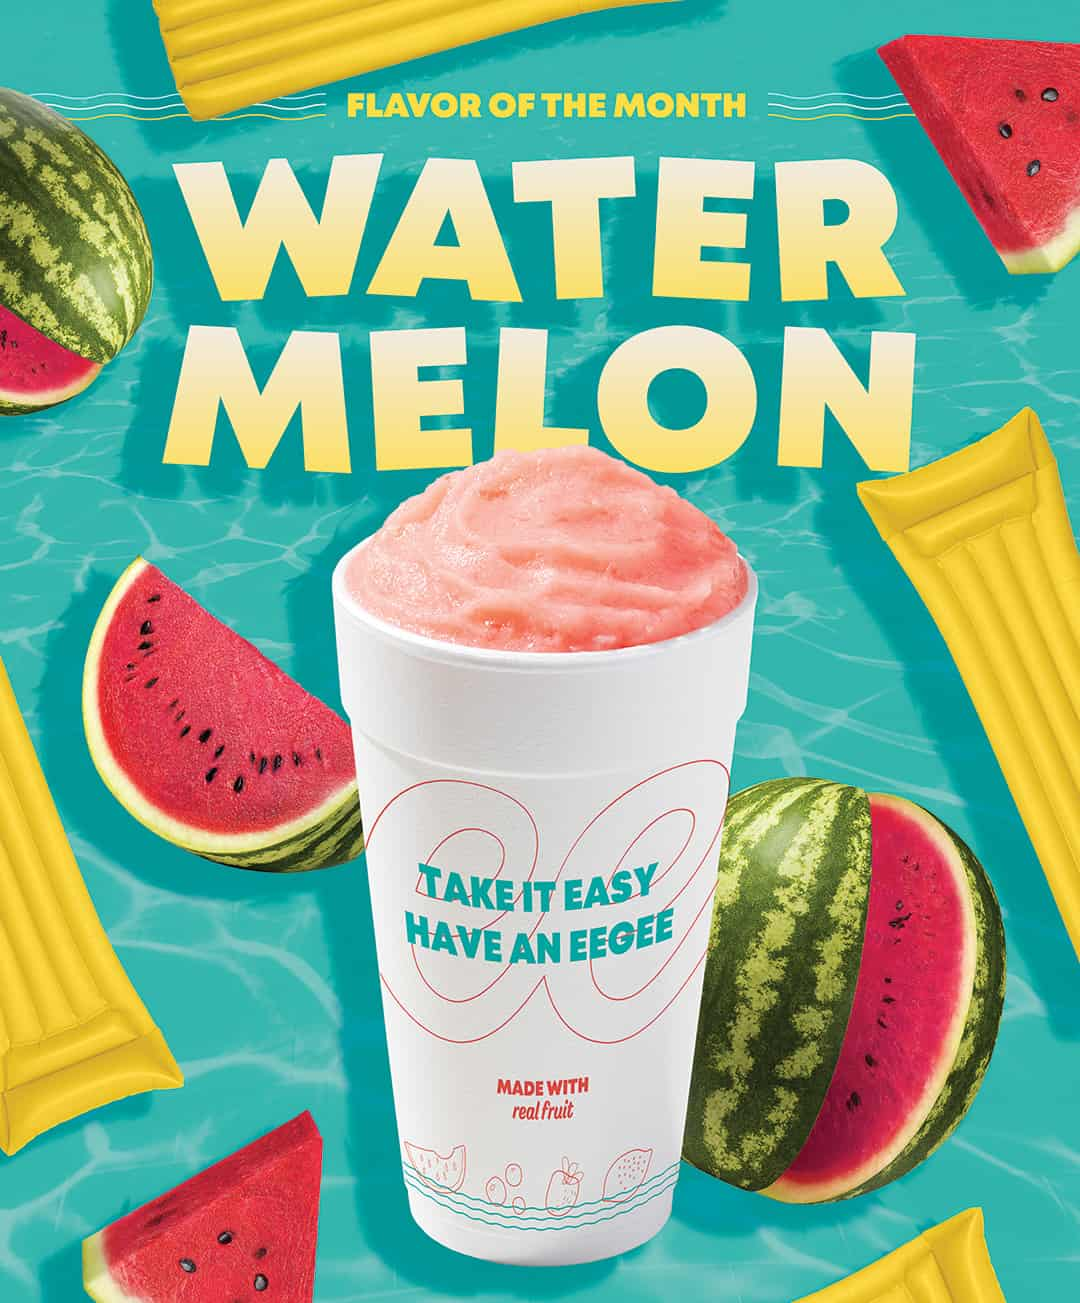 Monthly Restaurant Marketing & Advertising - Watermelon eegee